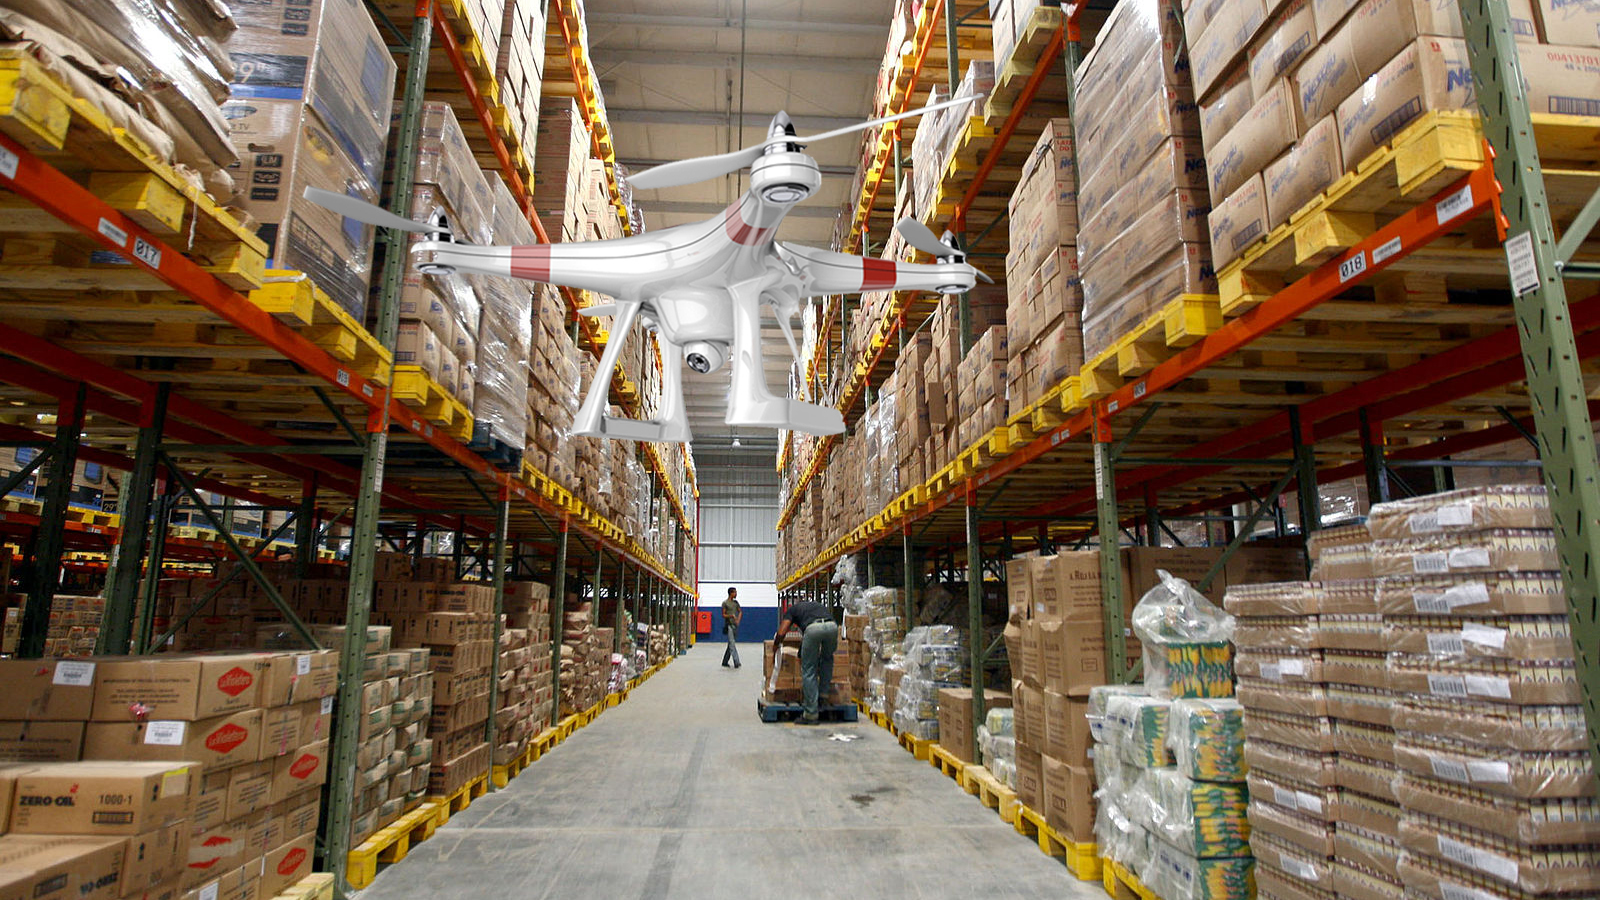 Drones Monitor Inventory Levels In Walmart Warehouses